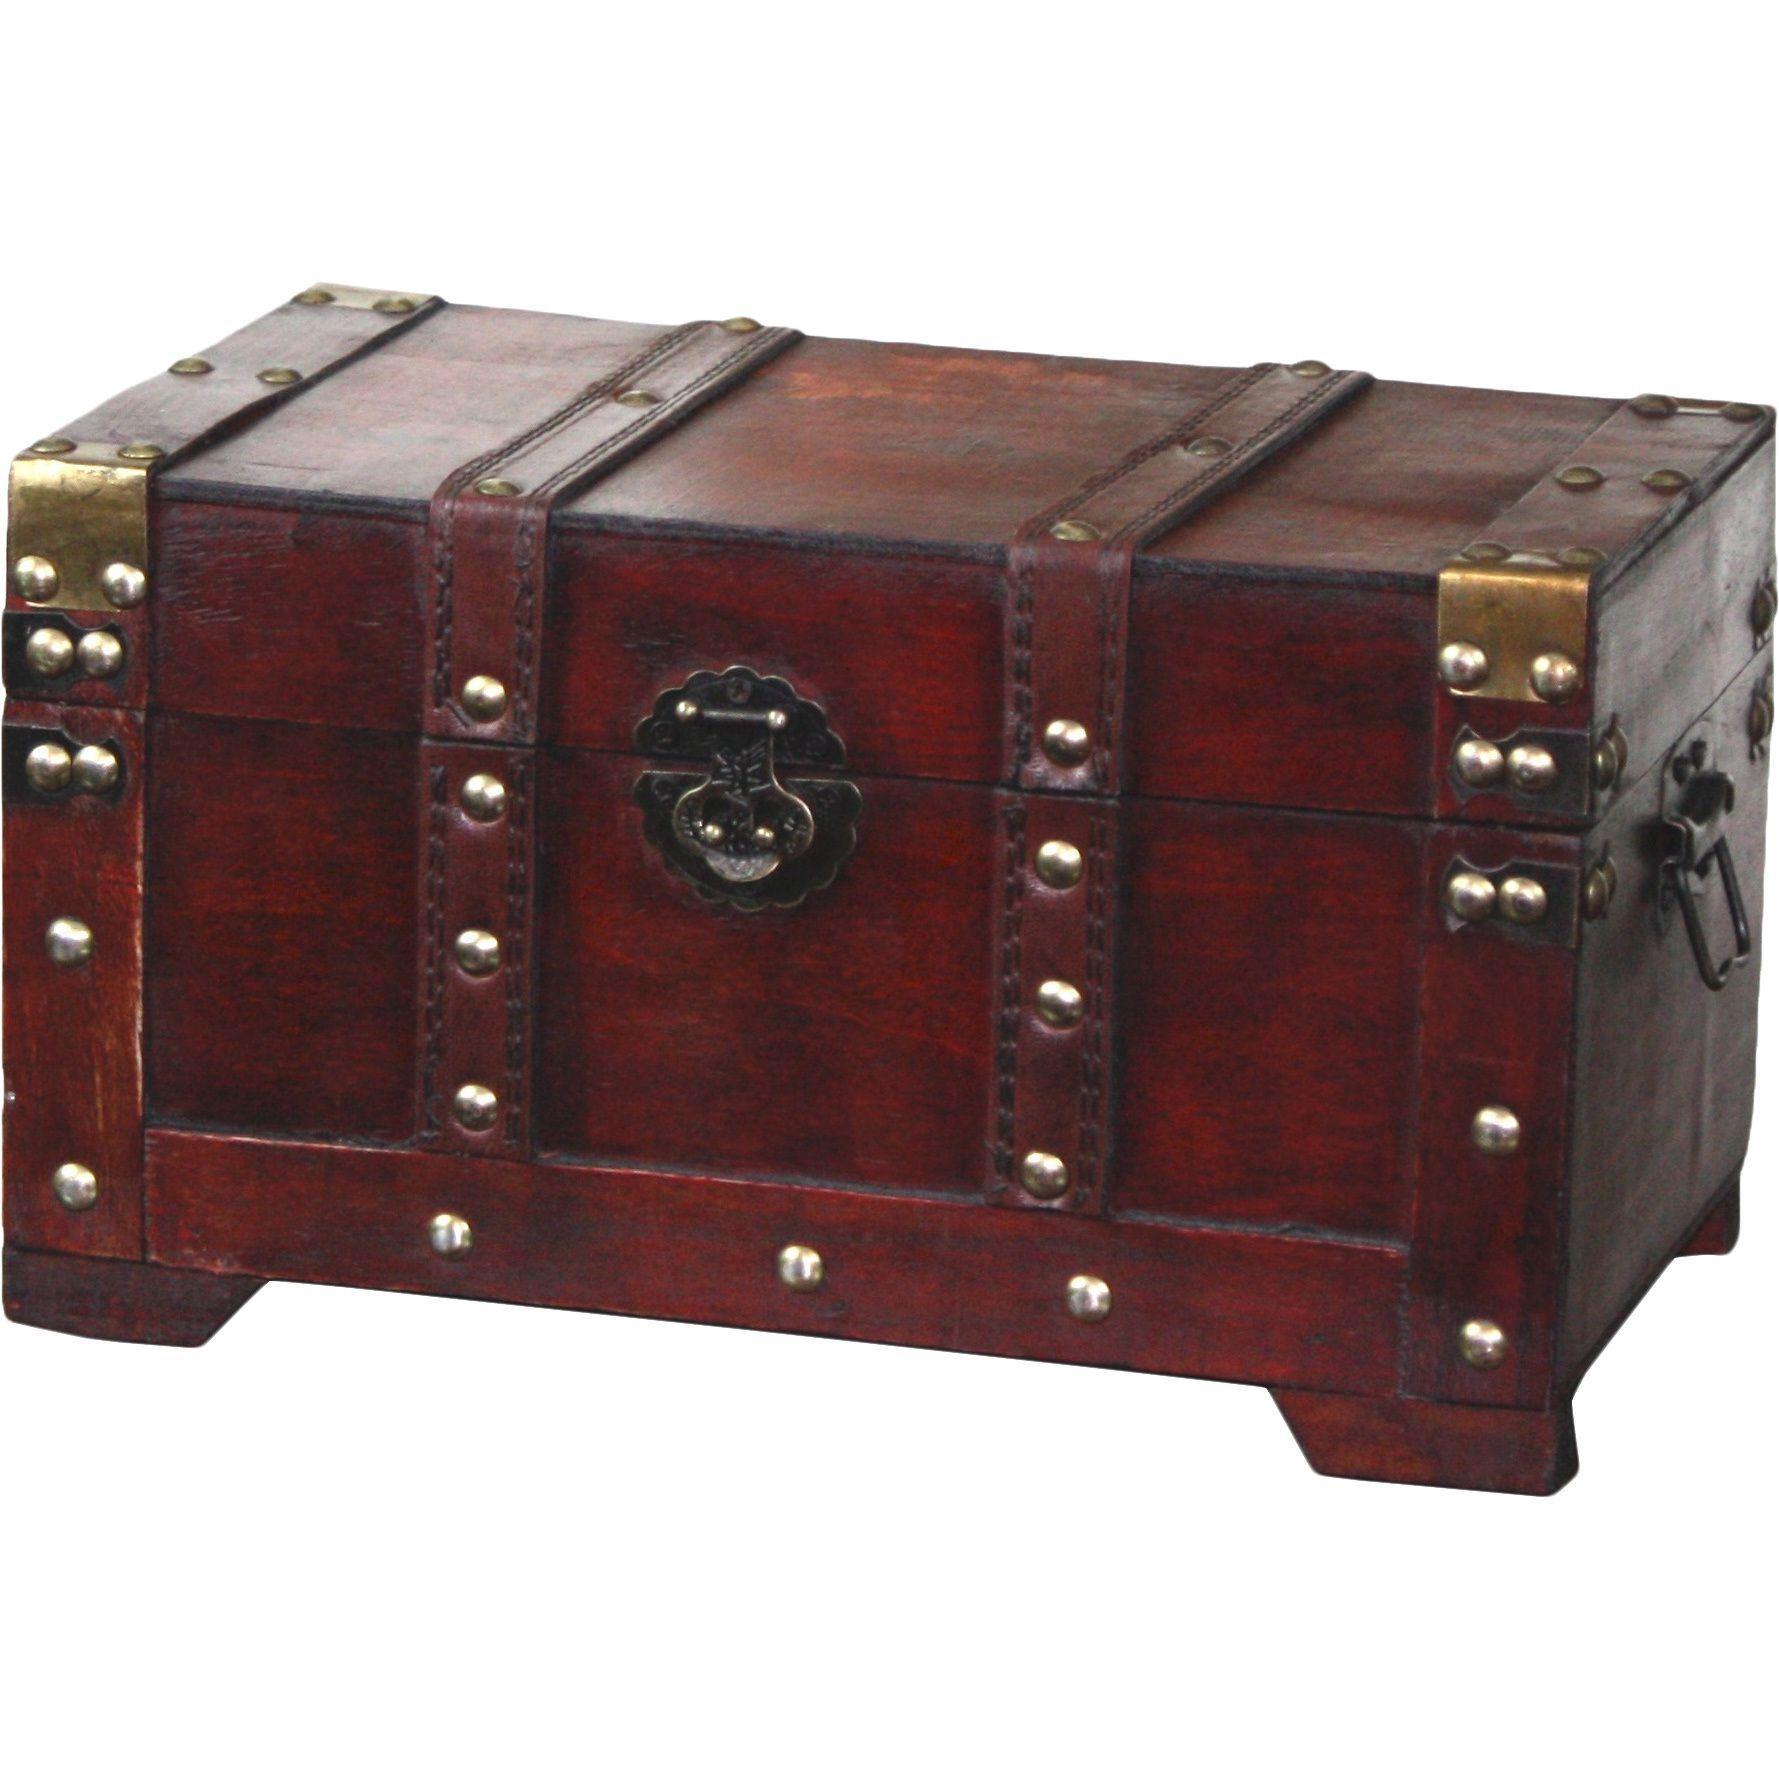 Hide Your Treasures In This Decorative Antique Style Wooden Trunk Perfect For Decoration Or Storage